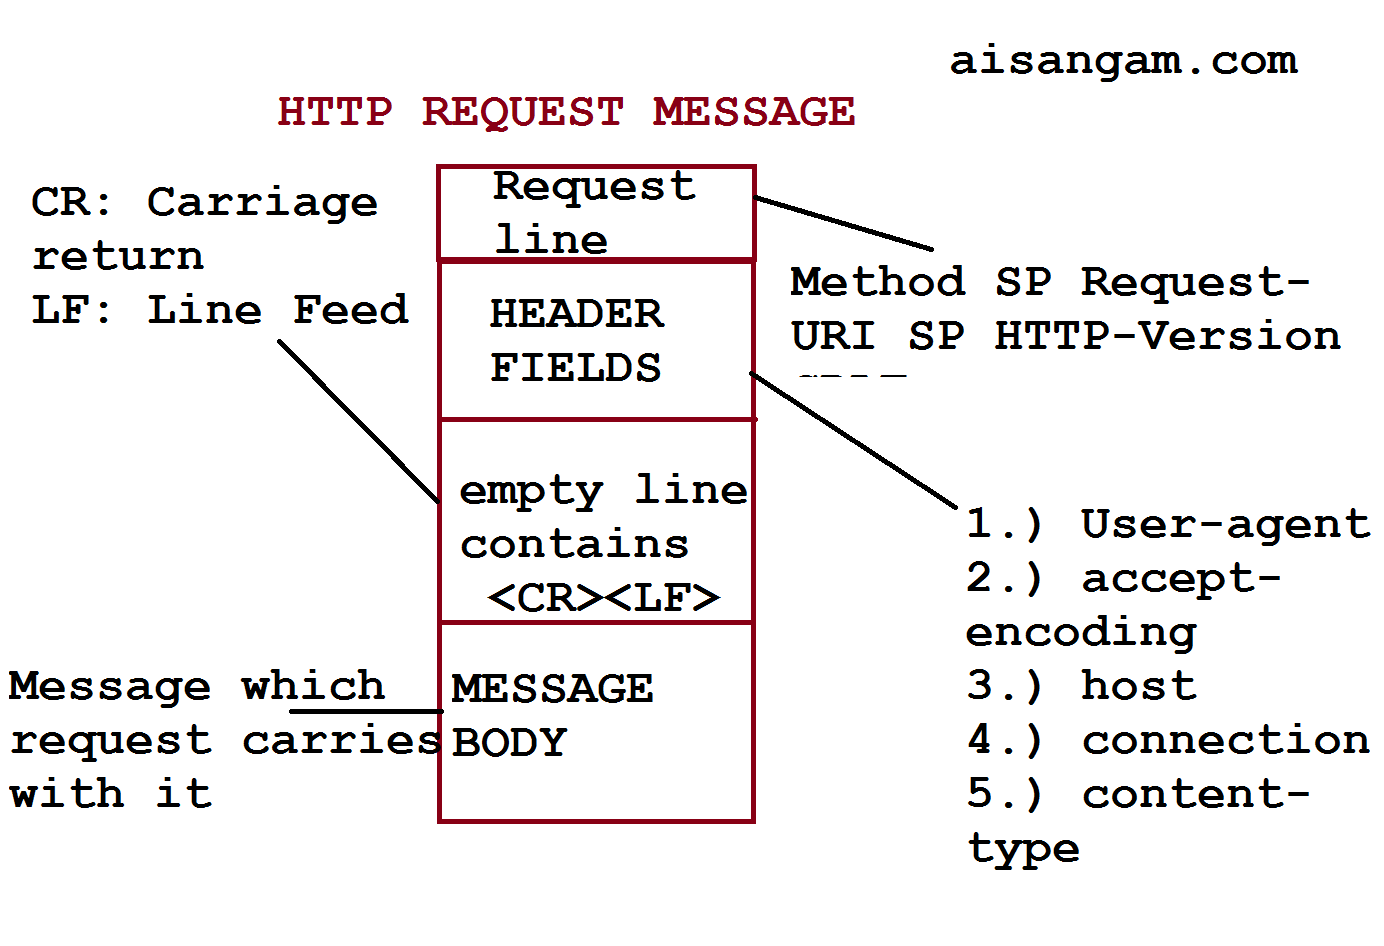 HTTP Request Message format well explained